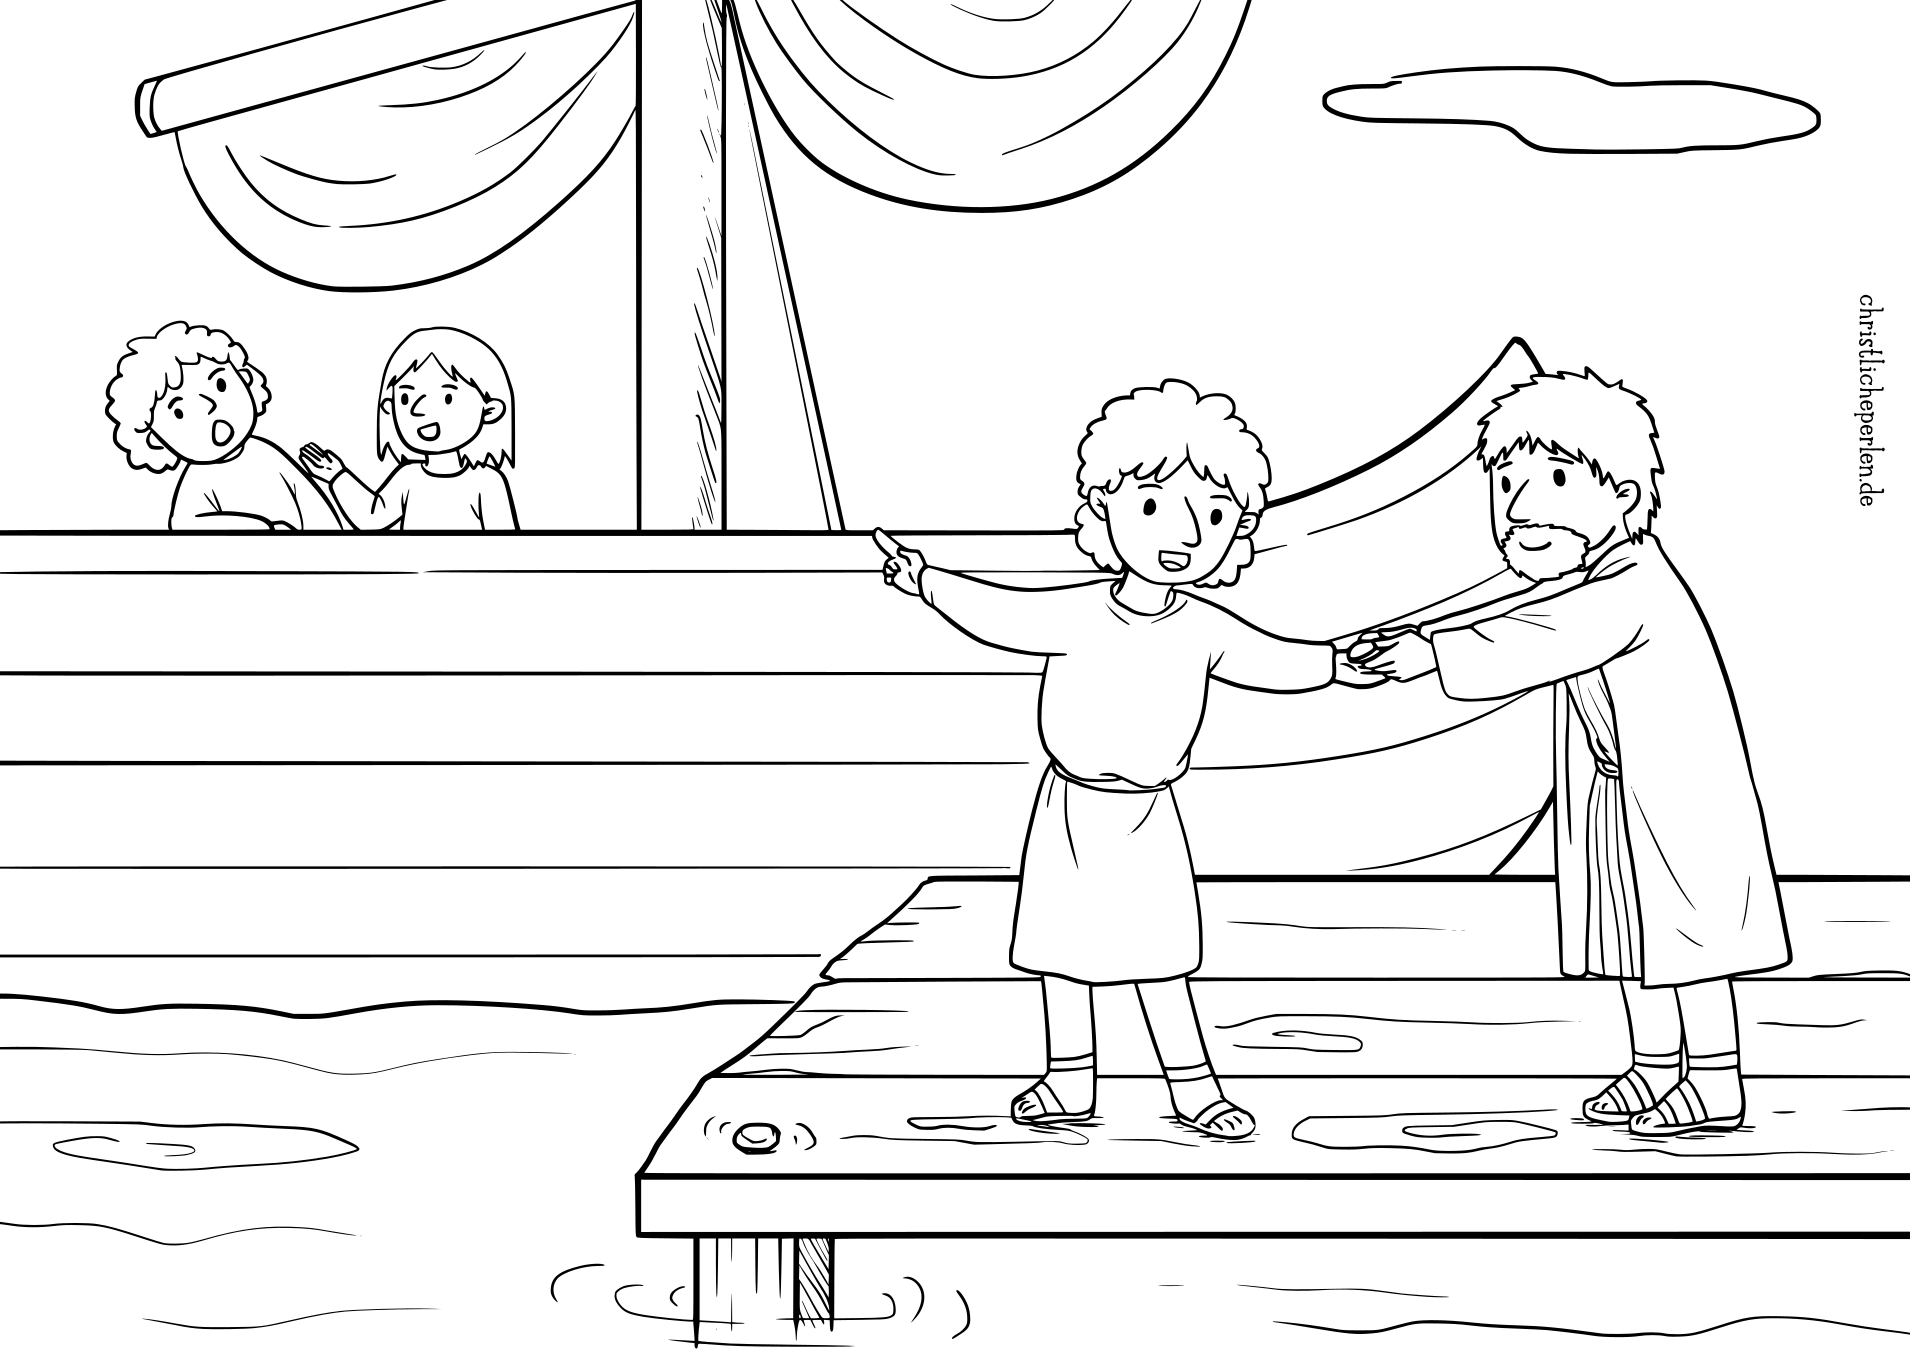 If You Want To Save A Single Coloring Page Instead Of The Pdf Ahead Please Click Before Saving Just One Time With Left Mousebutton Unto It Make